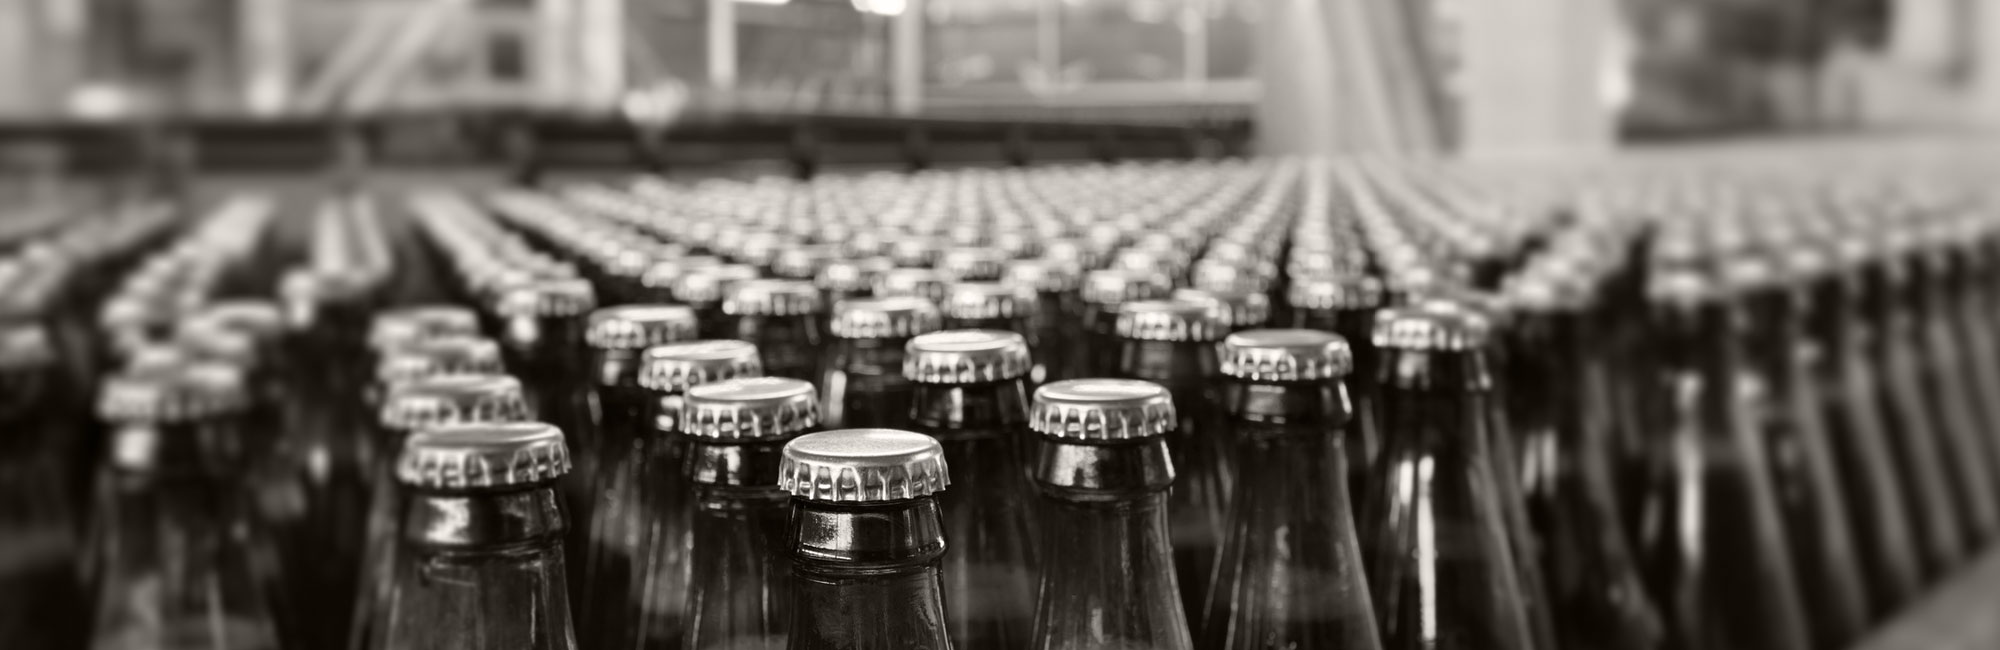 Bottling industry